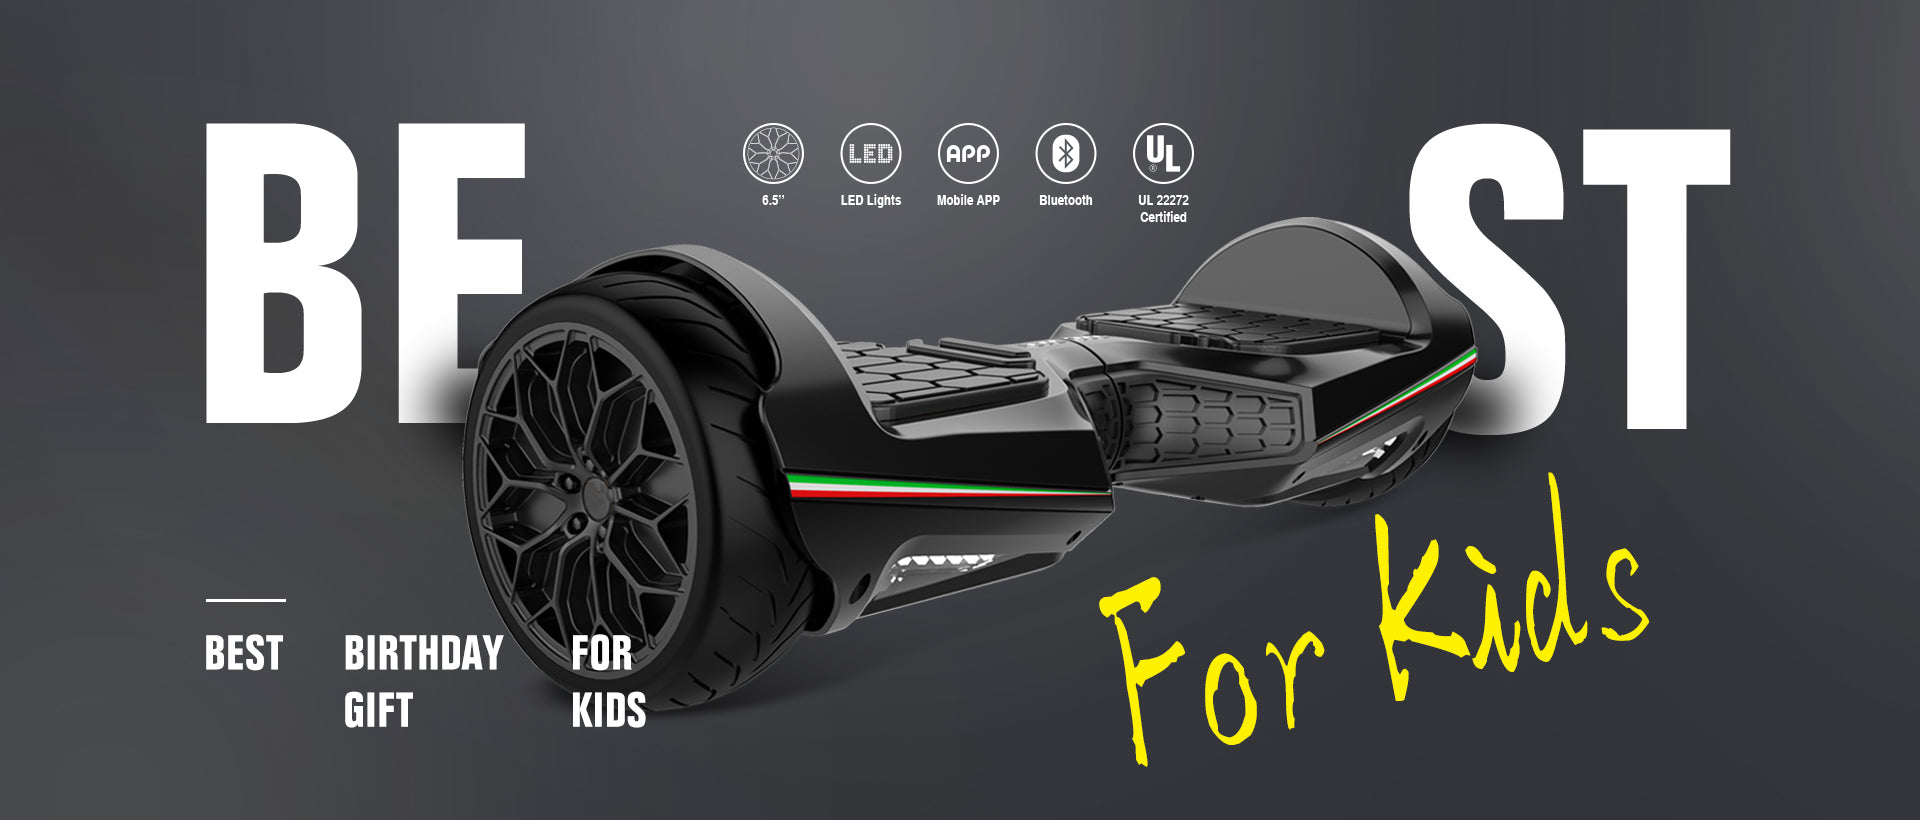 "6.5"" Lamborghini hoverboard - Best Birthday Gift for Kids"